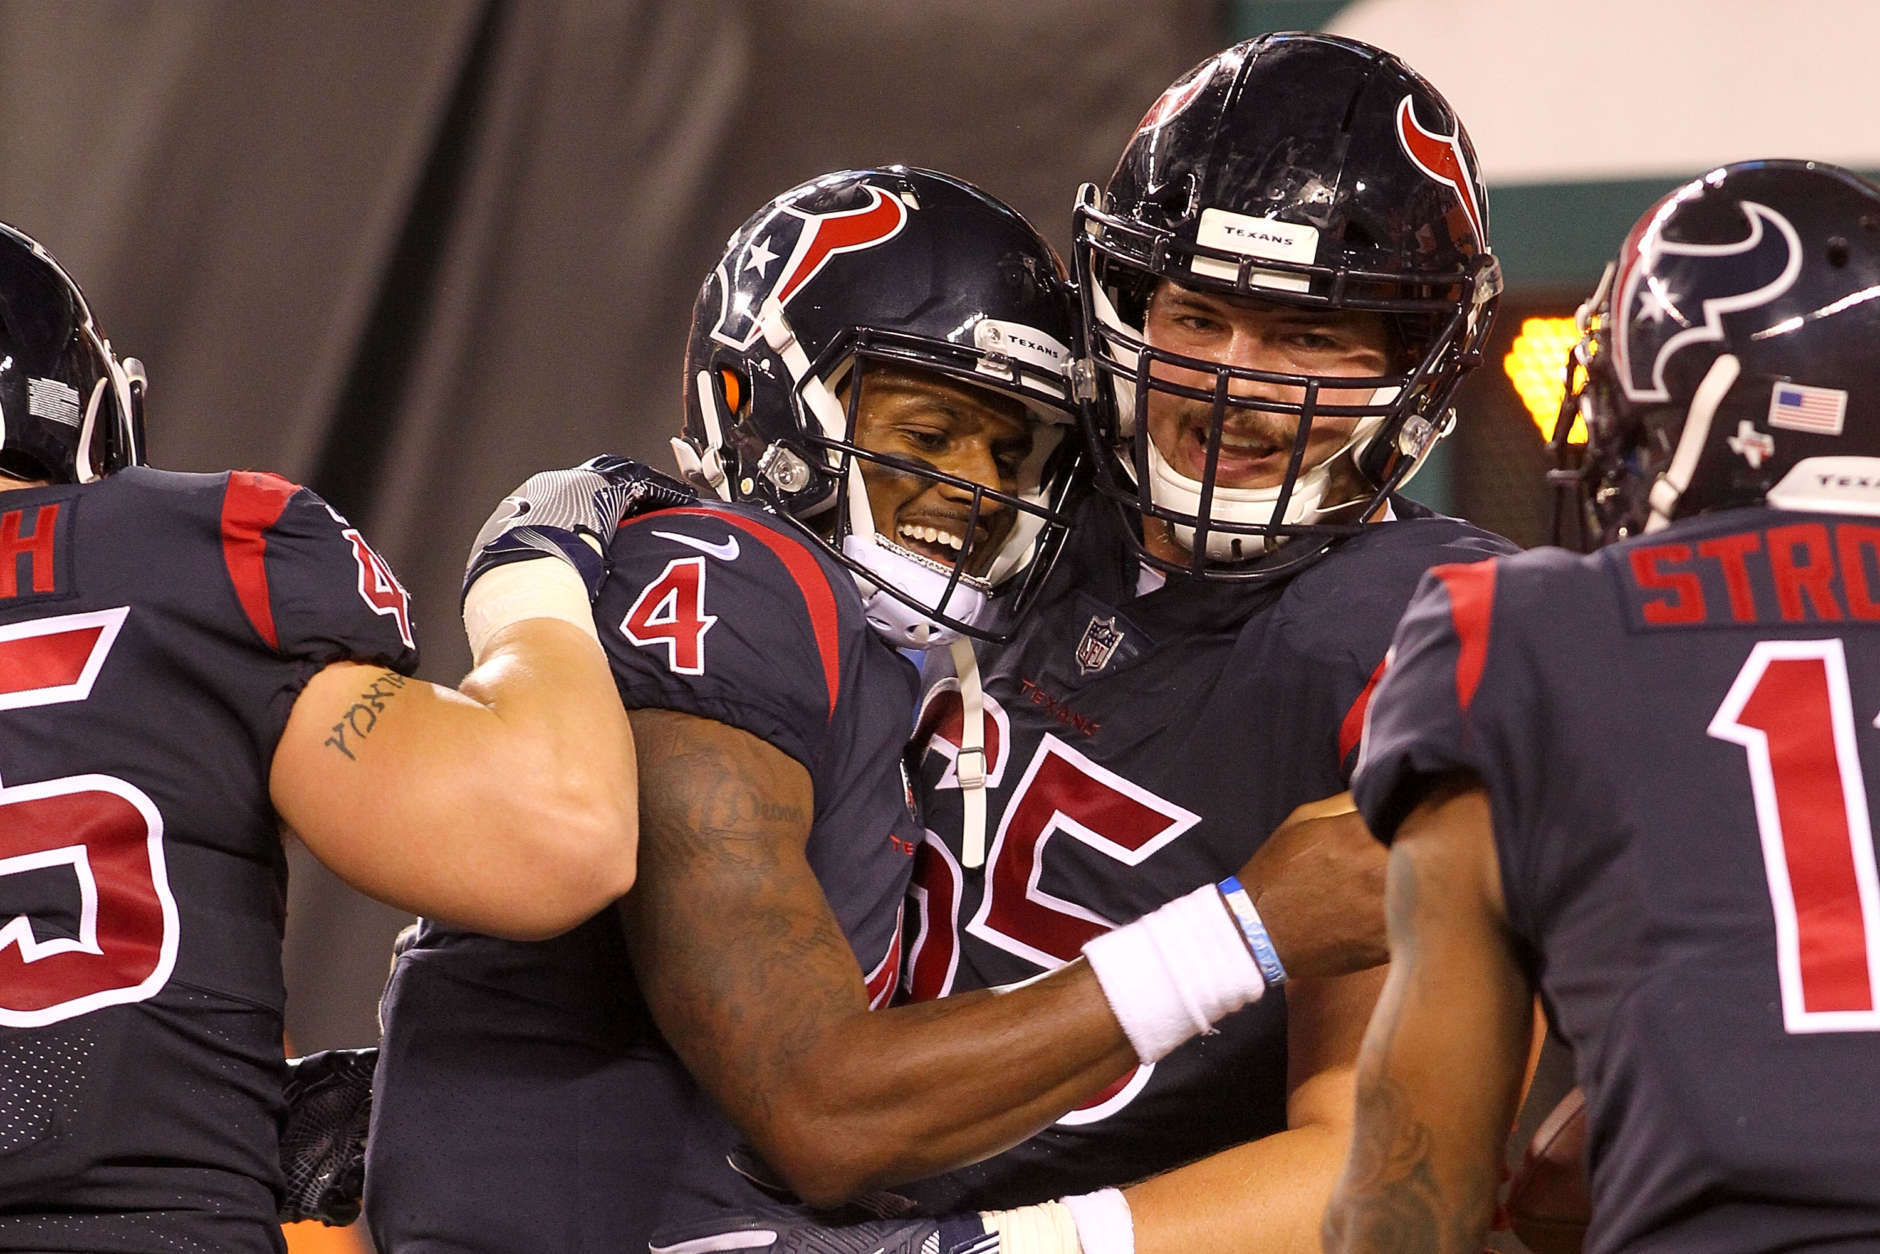 CINCINNATI, OH - SEPTEMBER 14:  Deshaun Watson #4 of the Houston Texans celebrates with Greg Mancz #65 after scoring a touchdown against the Cincinnati Bengals during the first half at Paul Brown Stadium on September 14, 2017 in Cincinnati, Ohio.  (Photo by John Grieshop/Getty Images)